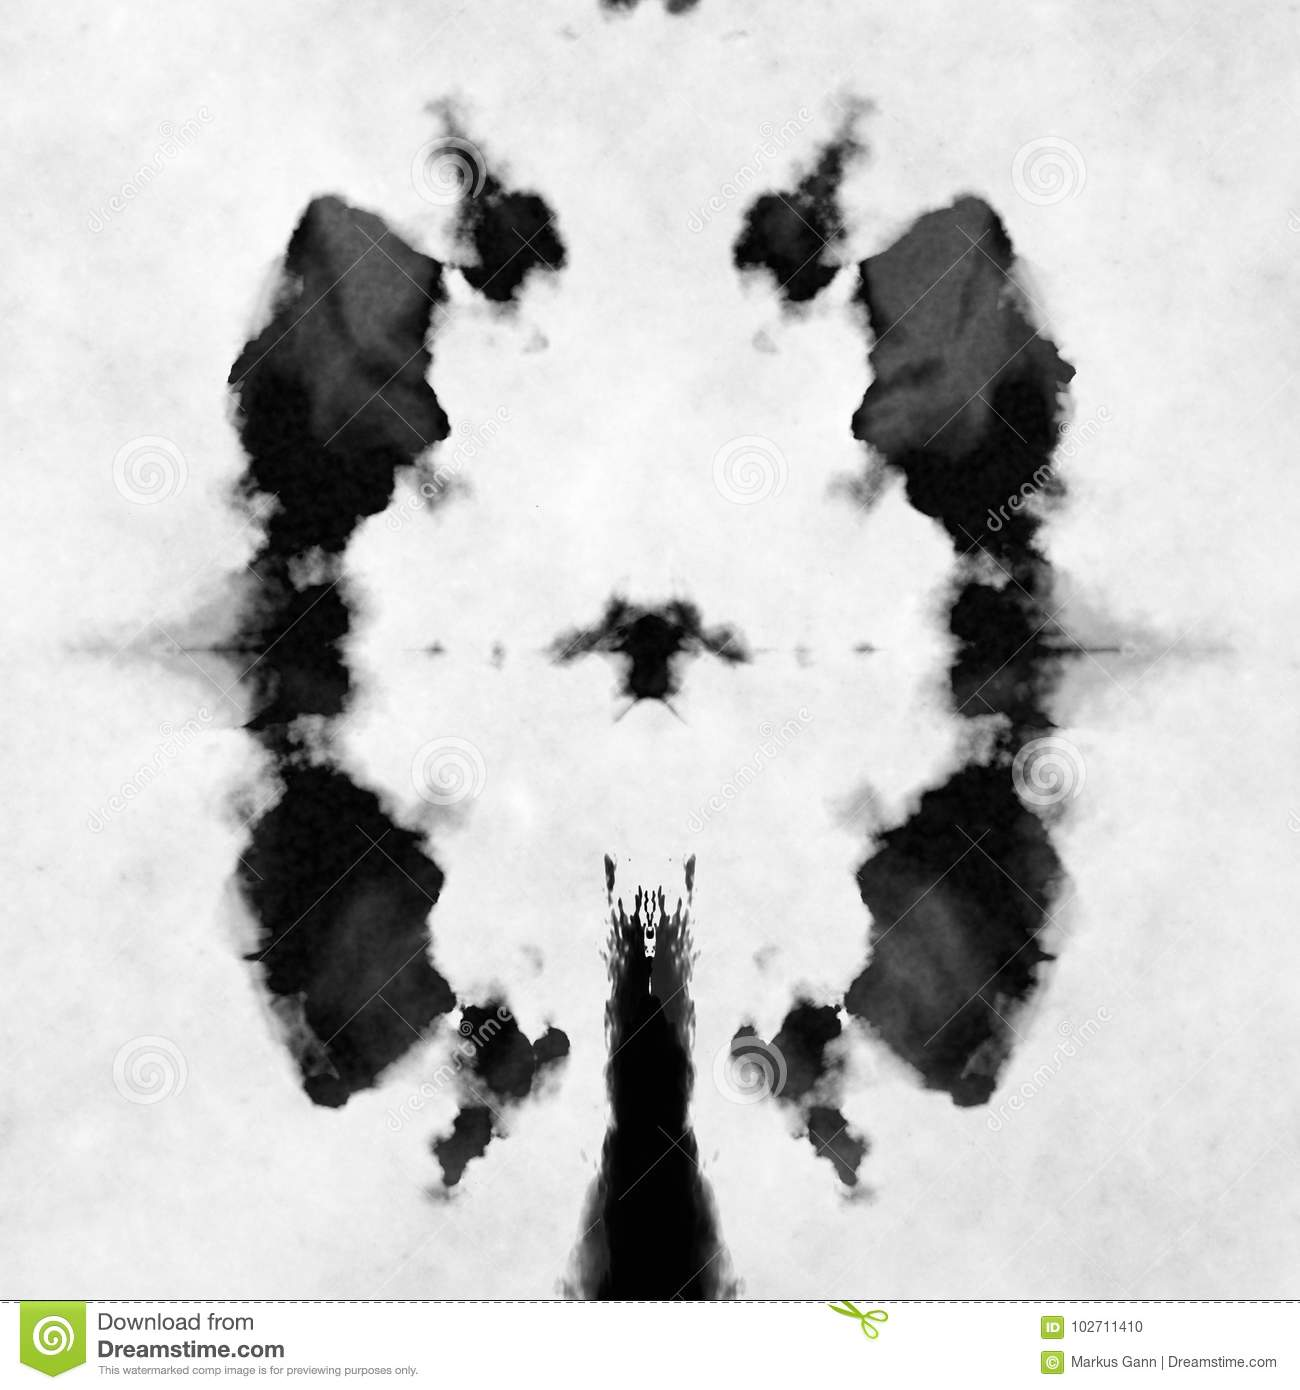 Black and white rorschach test